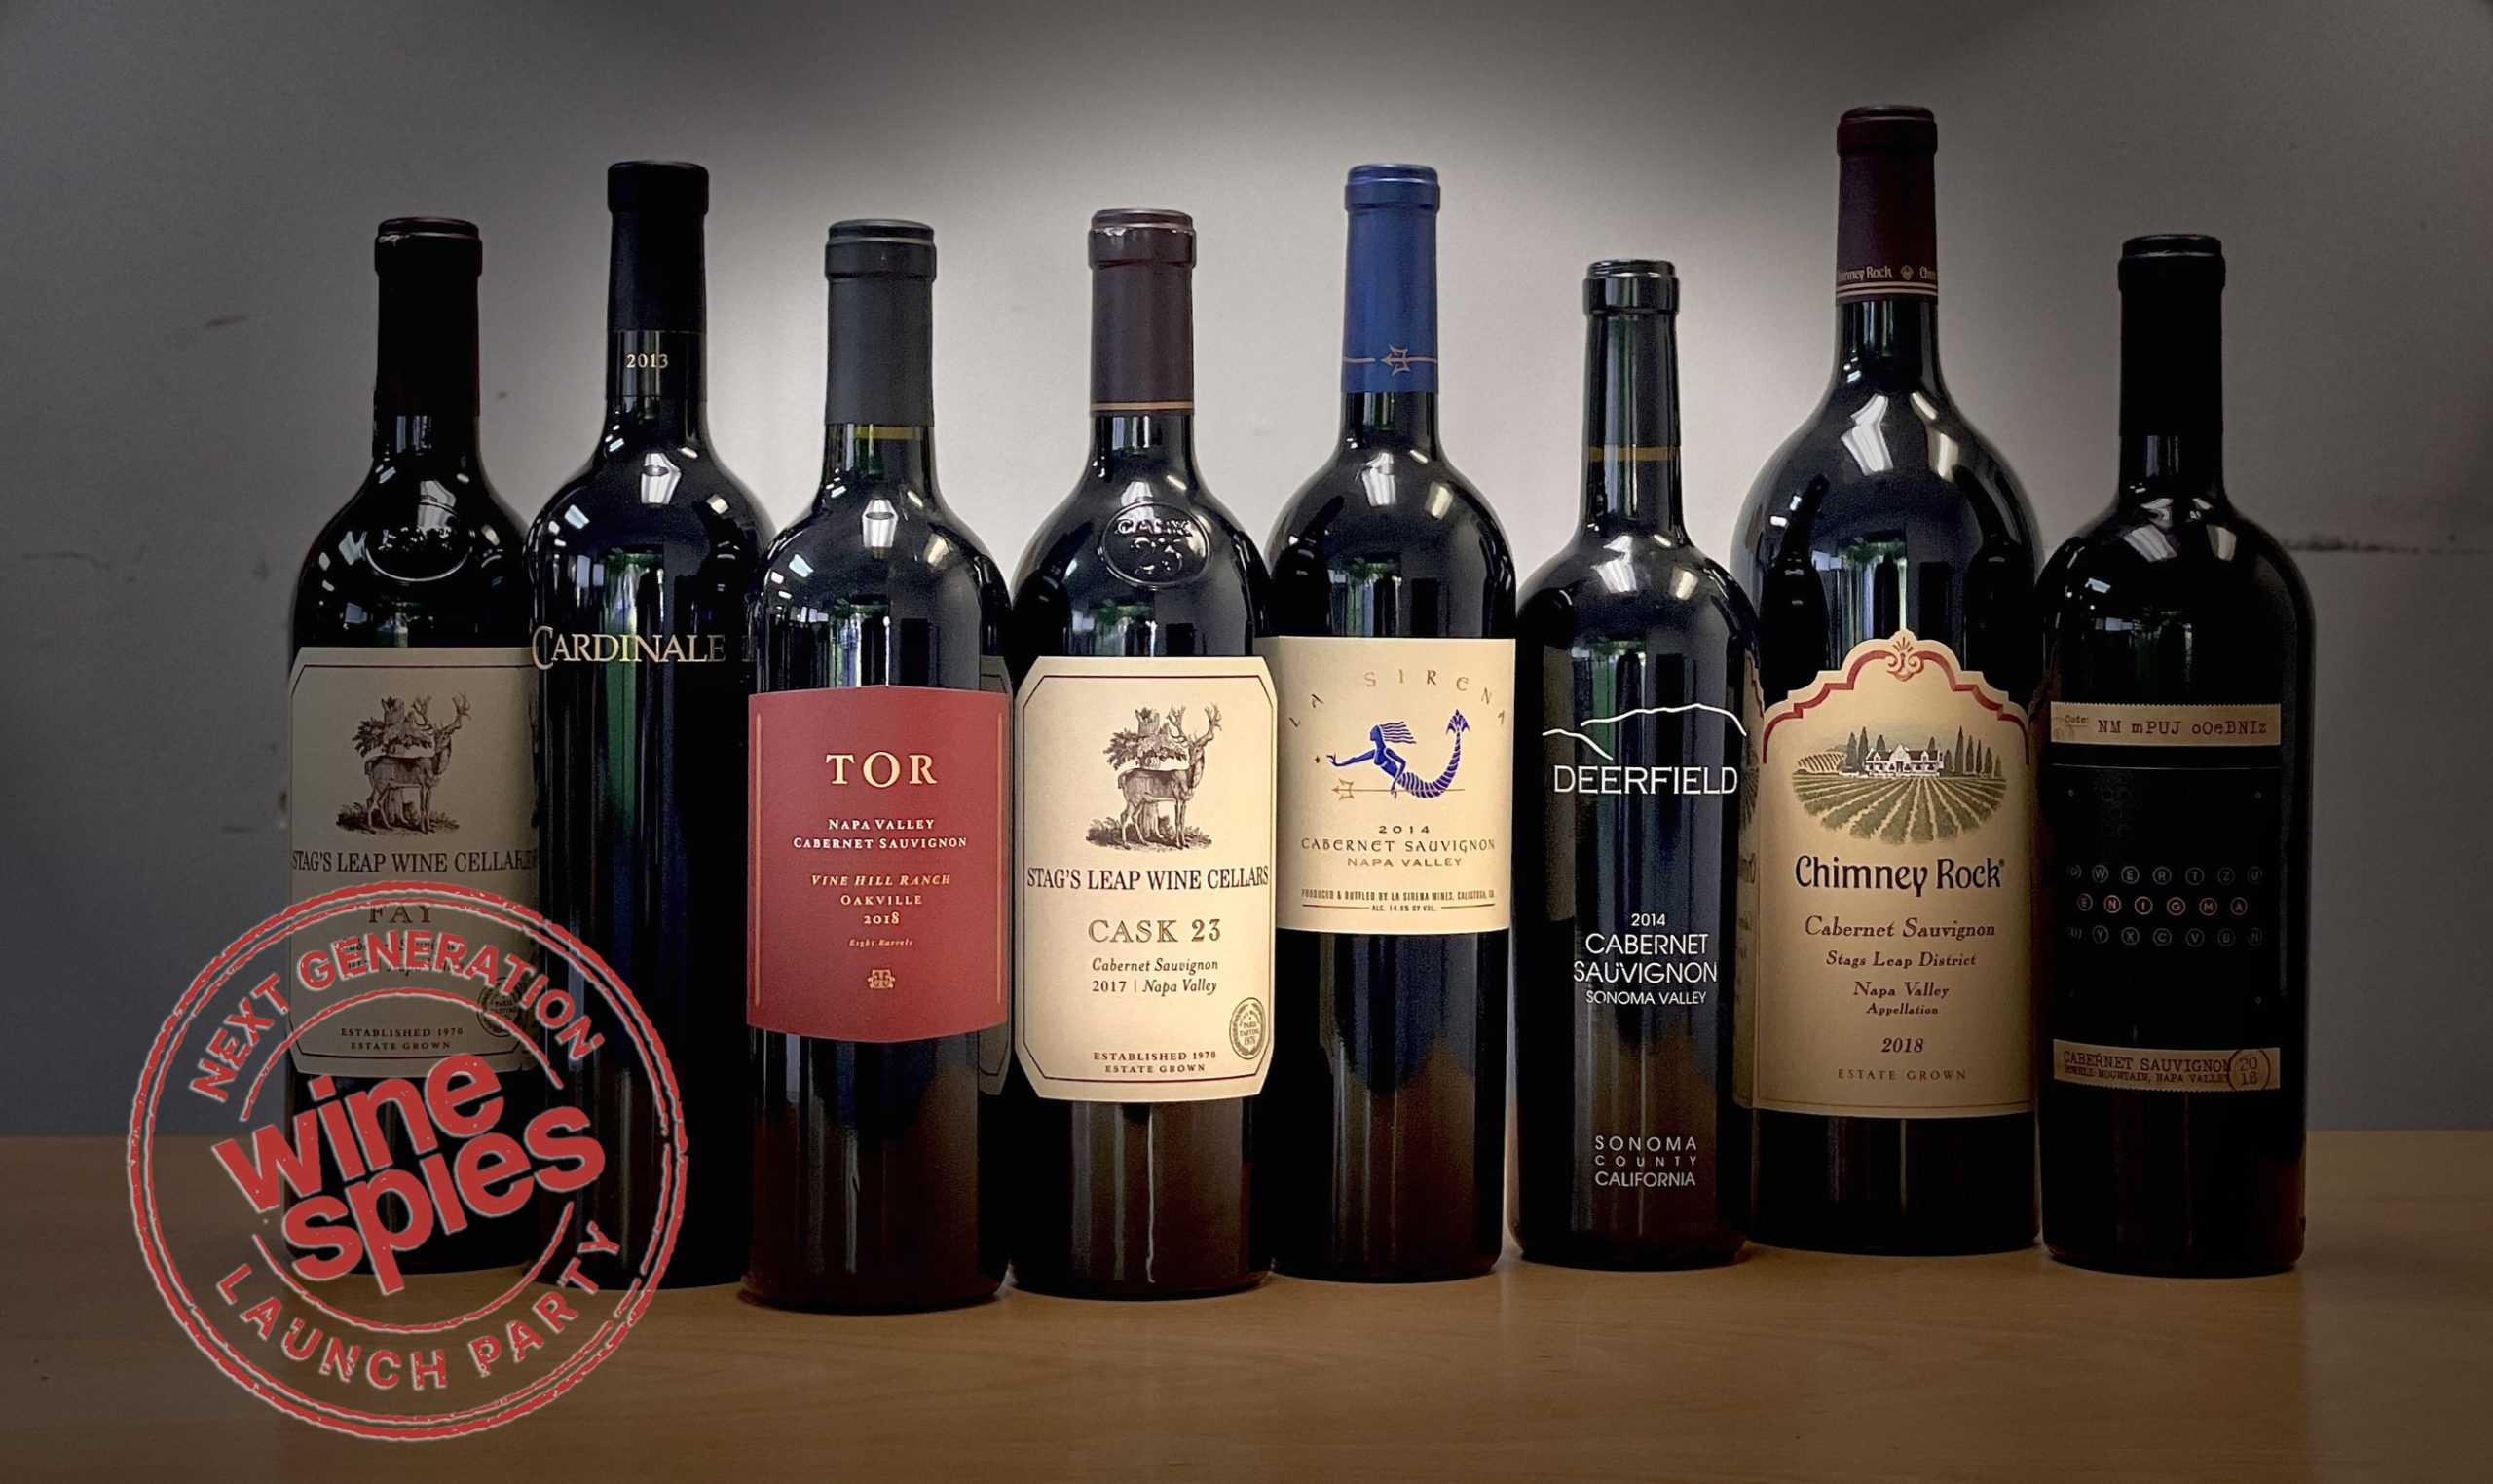 Wine Spies' Cellar Stocker event includes over two dozen wines, from cult Napa Cabs to first growth Bordeaux and everyday values - at the world's lowest prices.